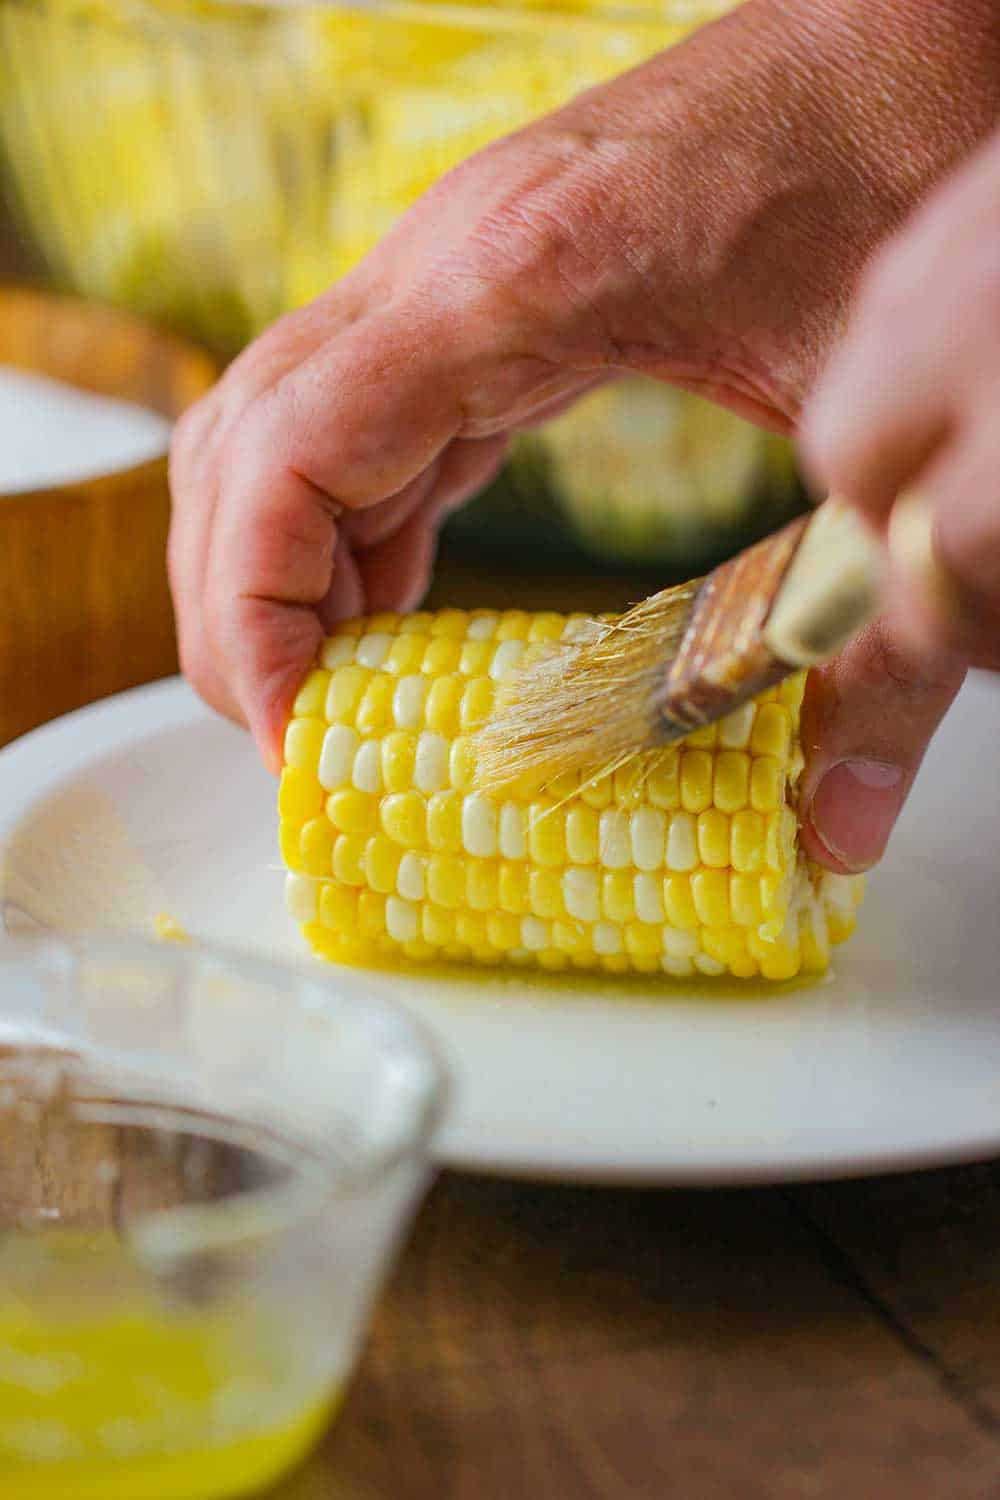 Brushing melted butter onto a corn niblet.